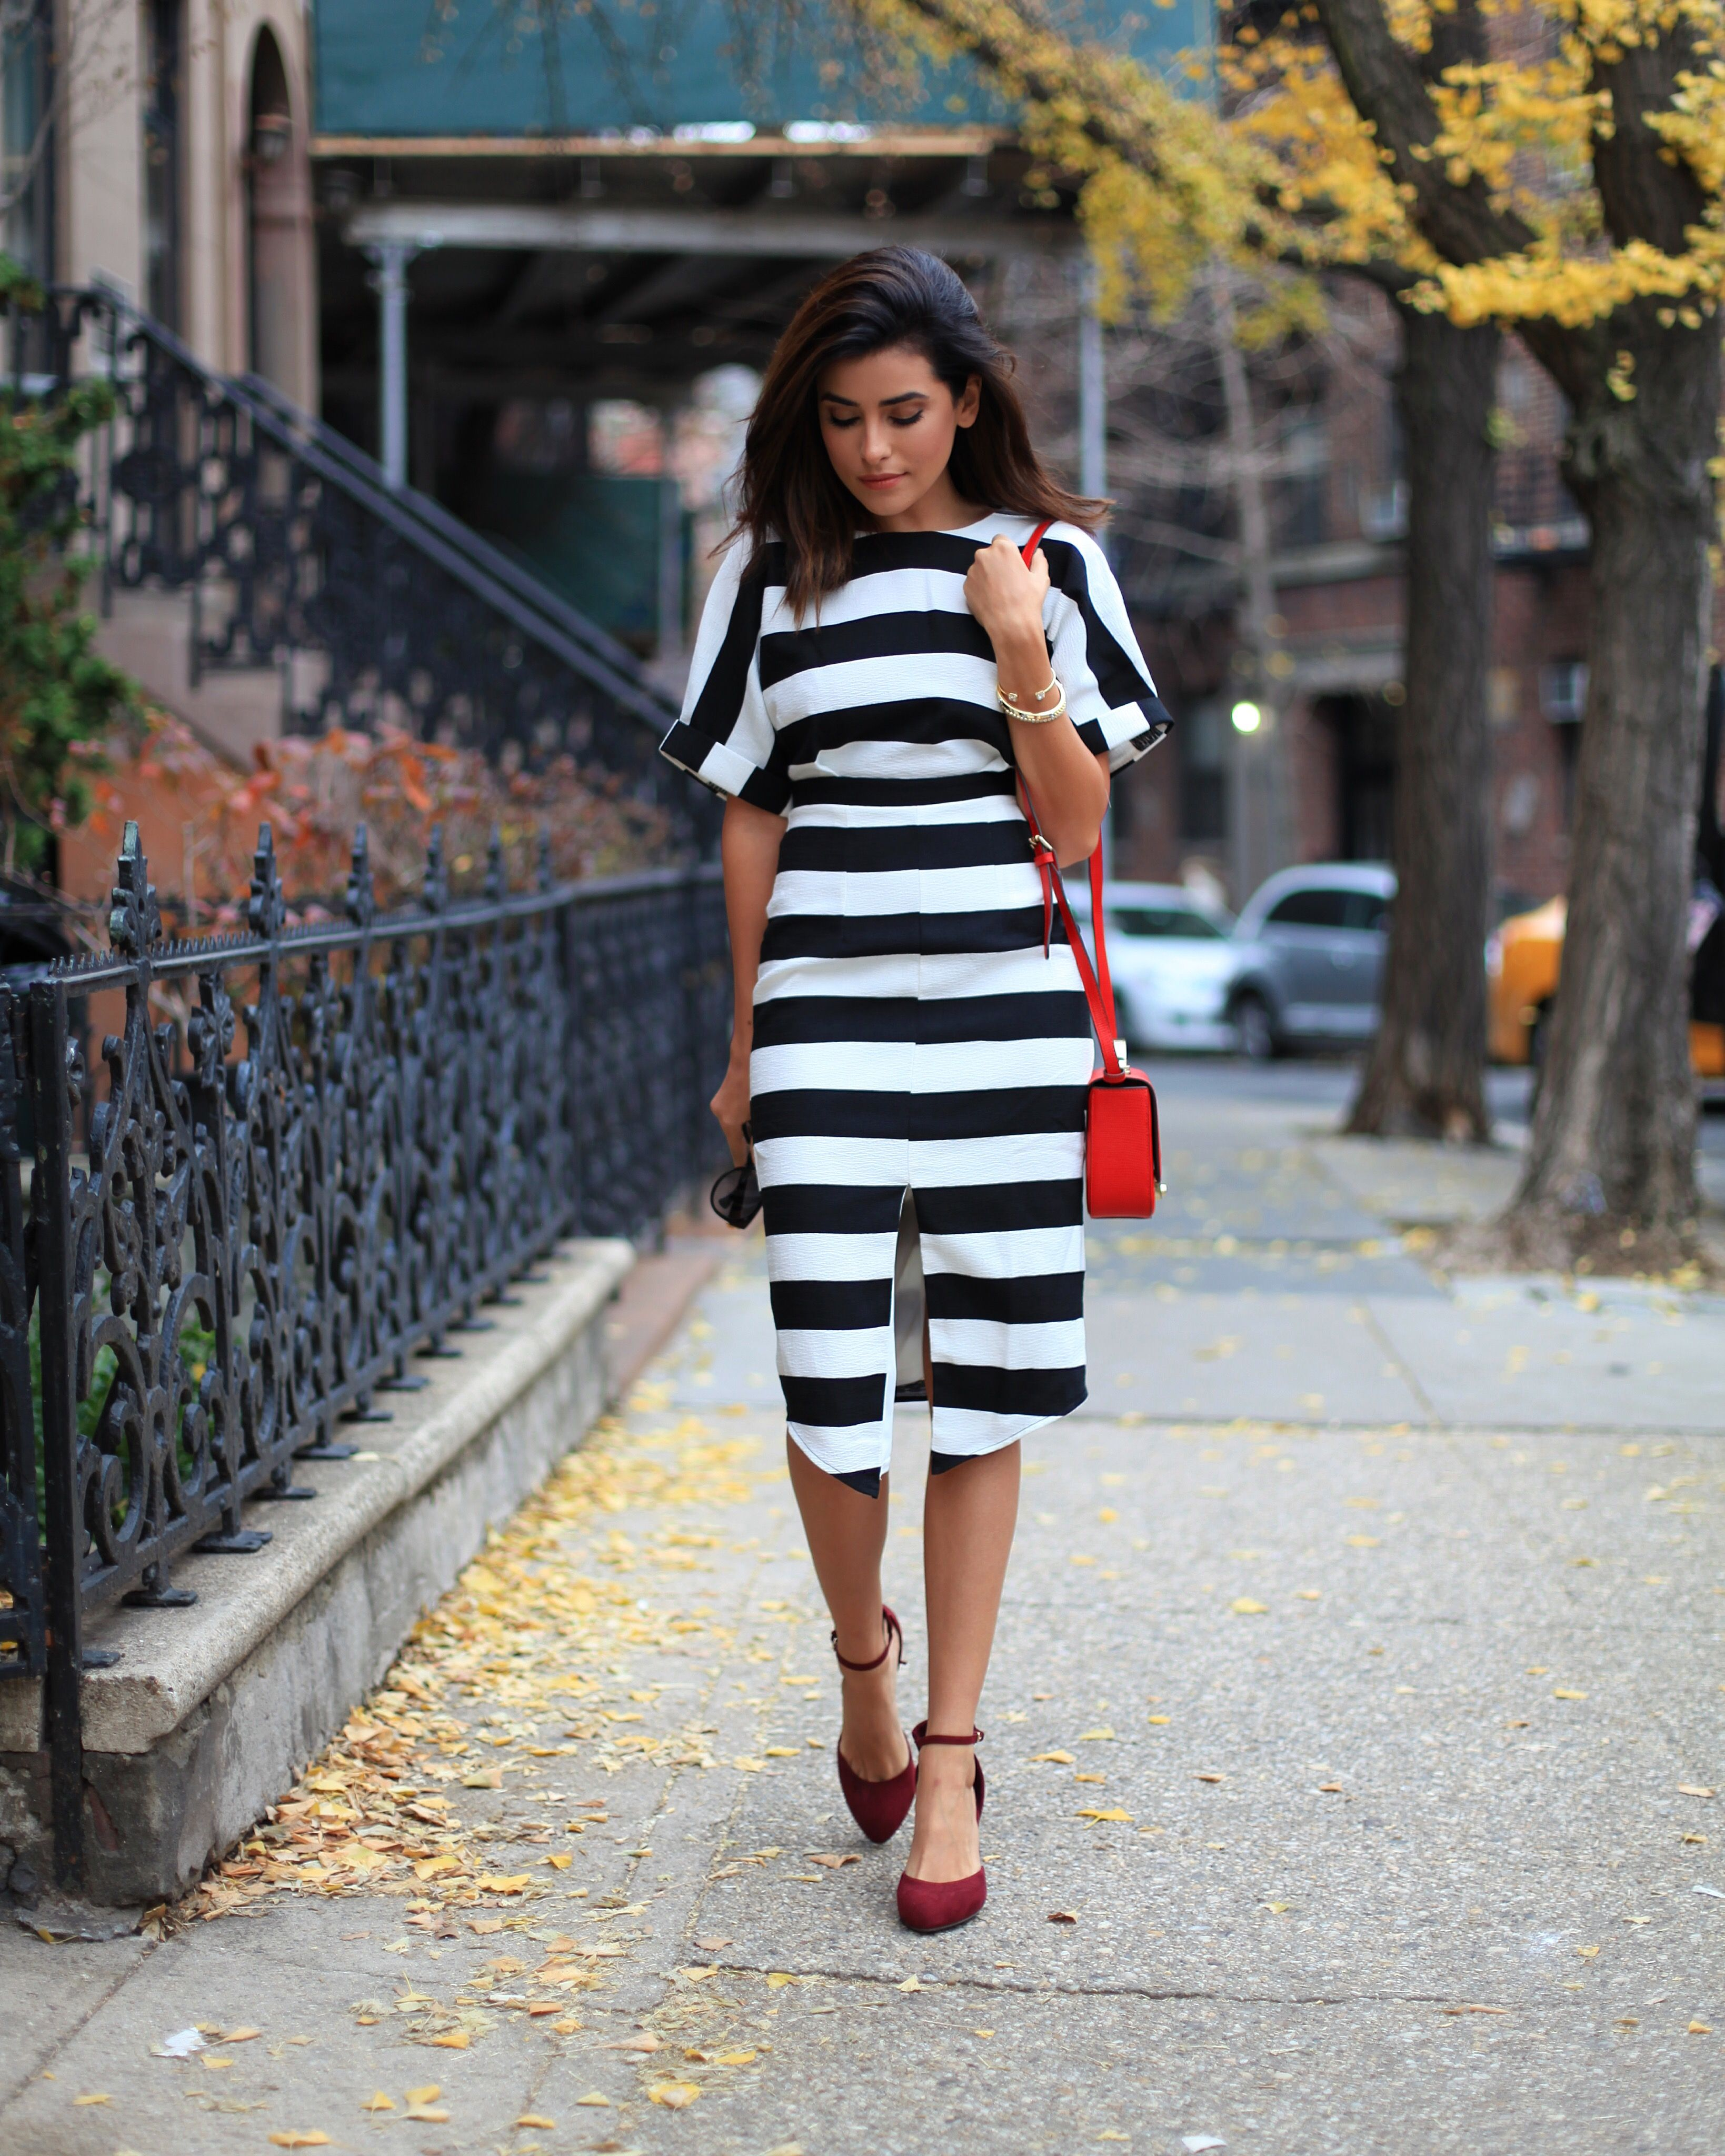 Red and white striped dress outfit